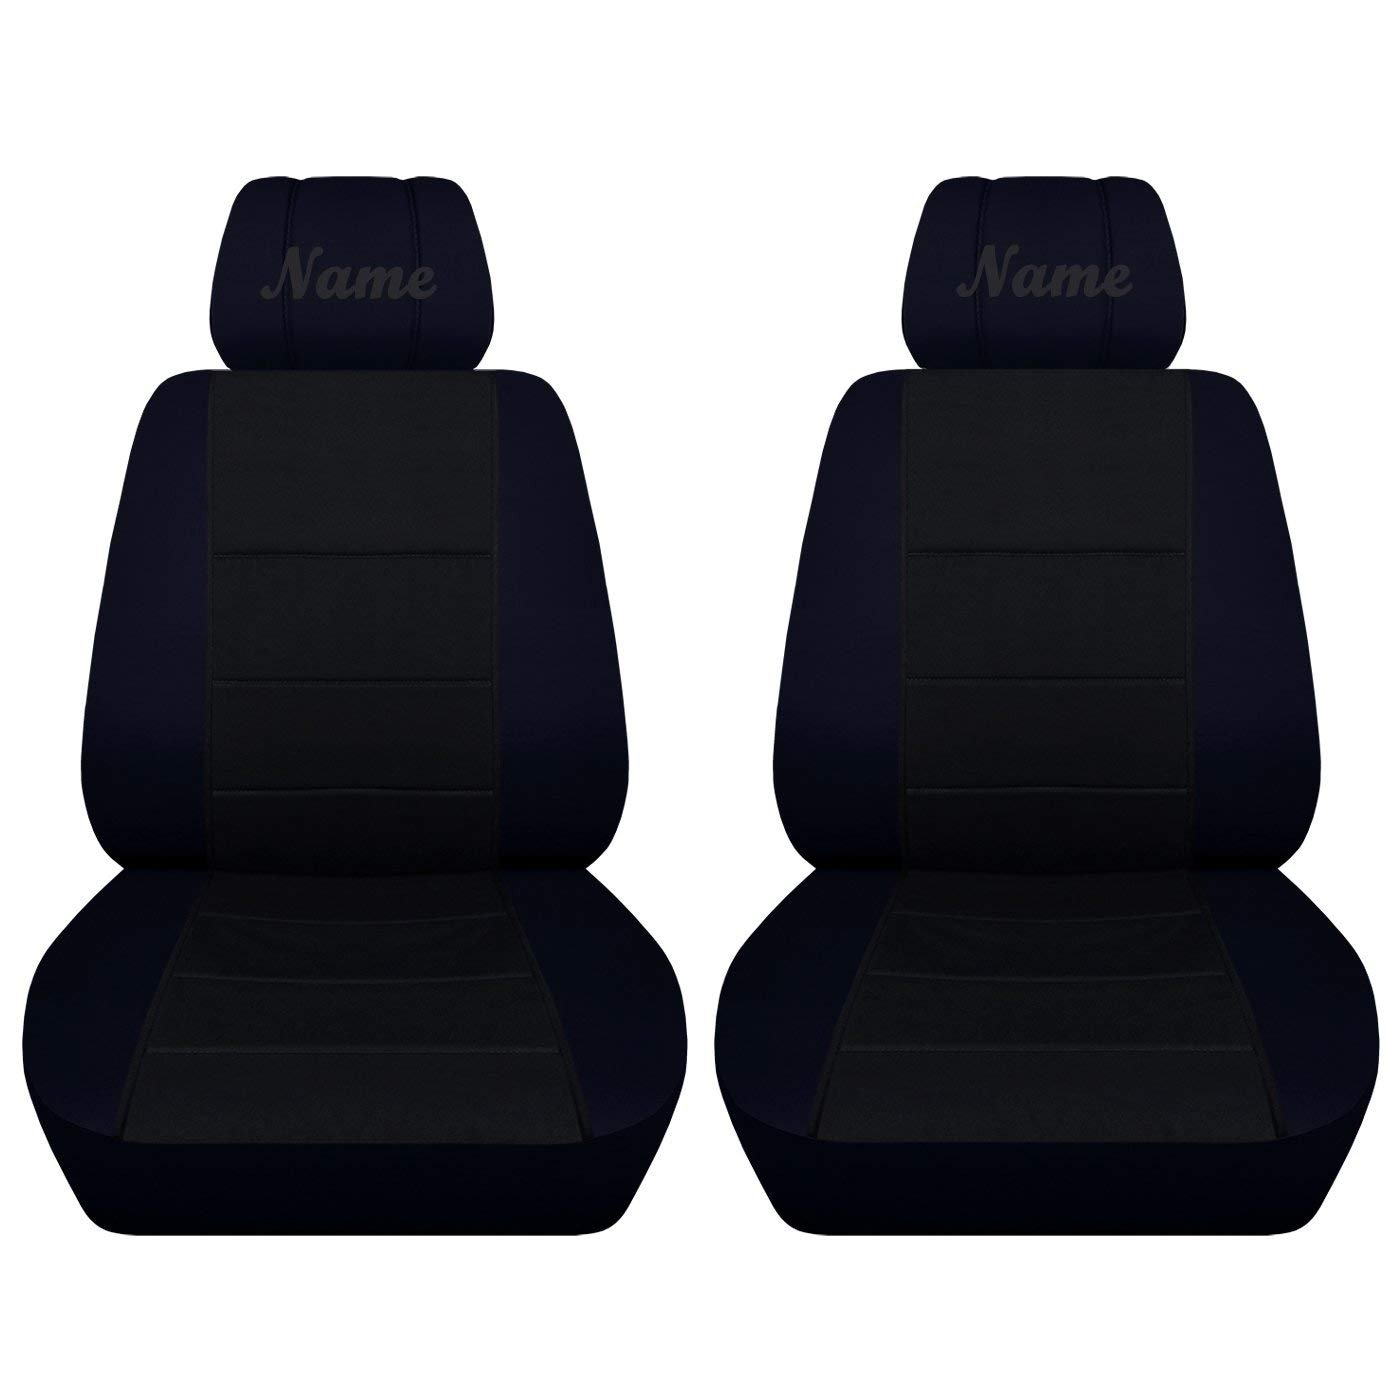 Designcovers Truck Seat Covers Fits 2007 to 2013 Chevy Silverado Bucket Seats Covers with Your Choice of Name 22 Color Options (Navy Blue Black, No Side Airbags)